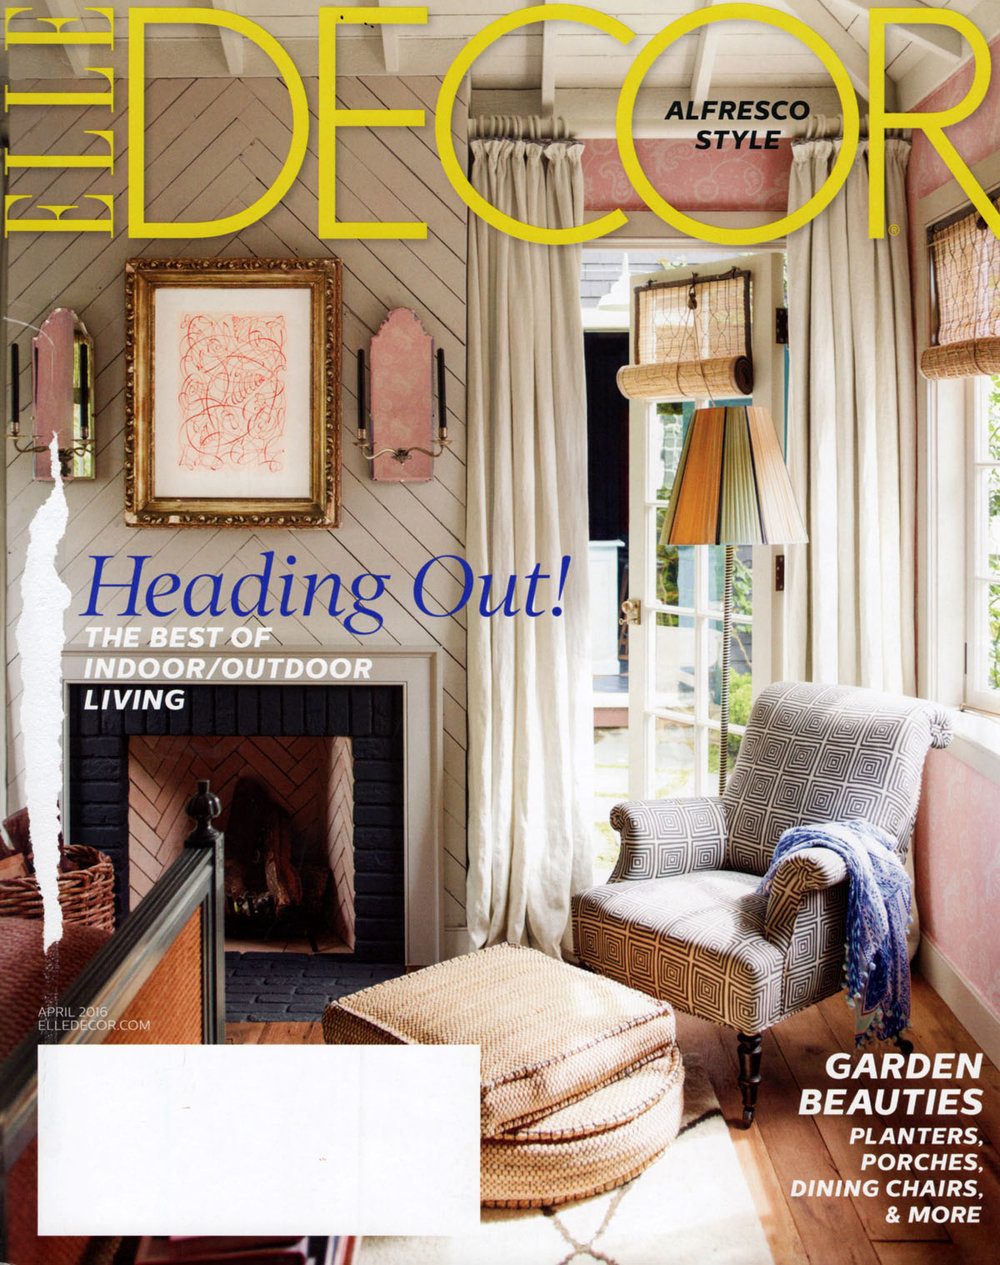 Elle Decor gem cover.jpg